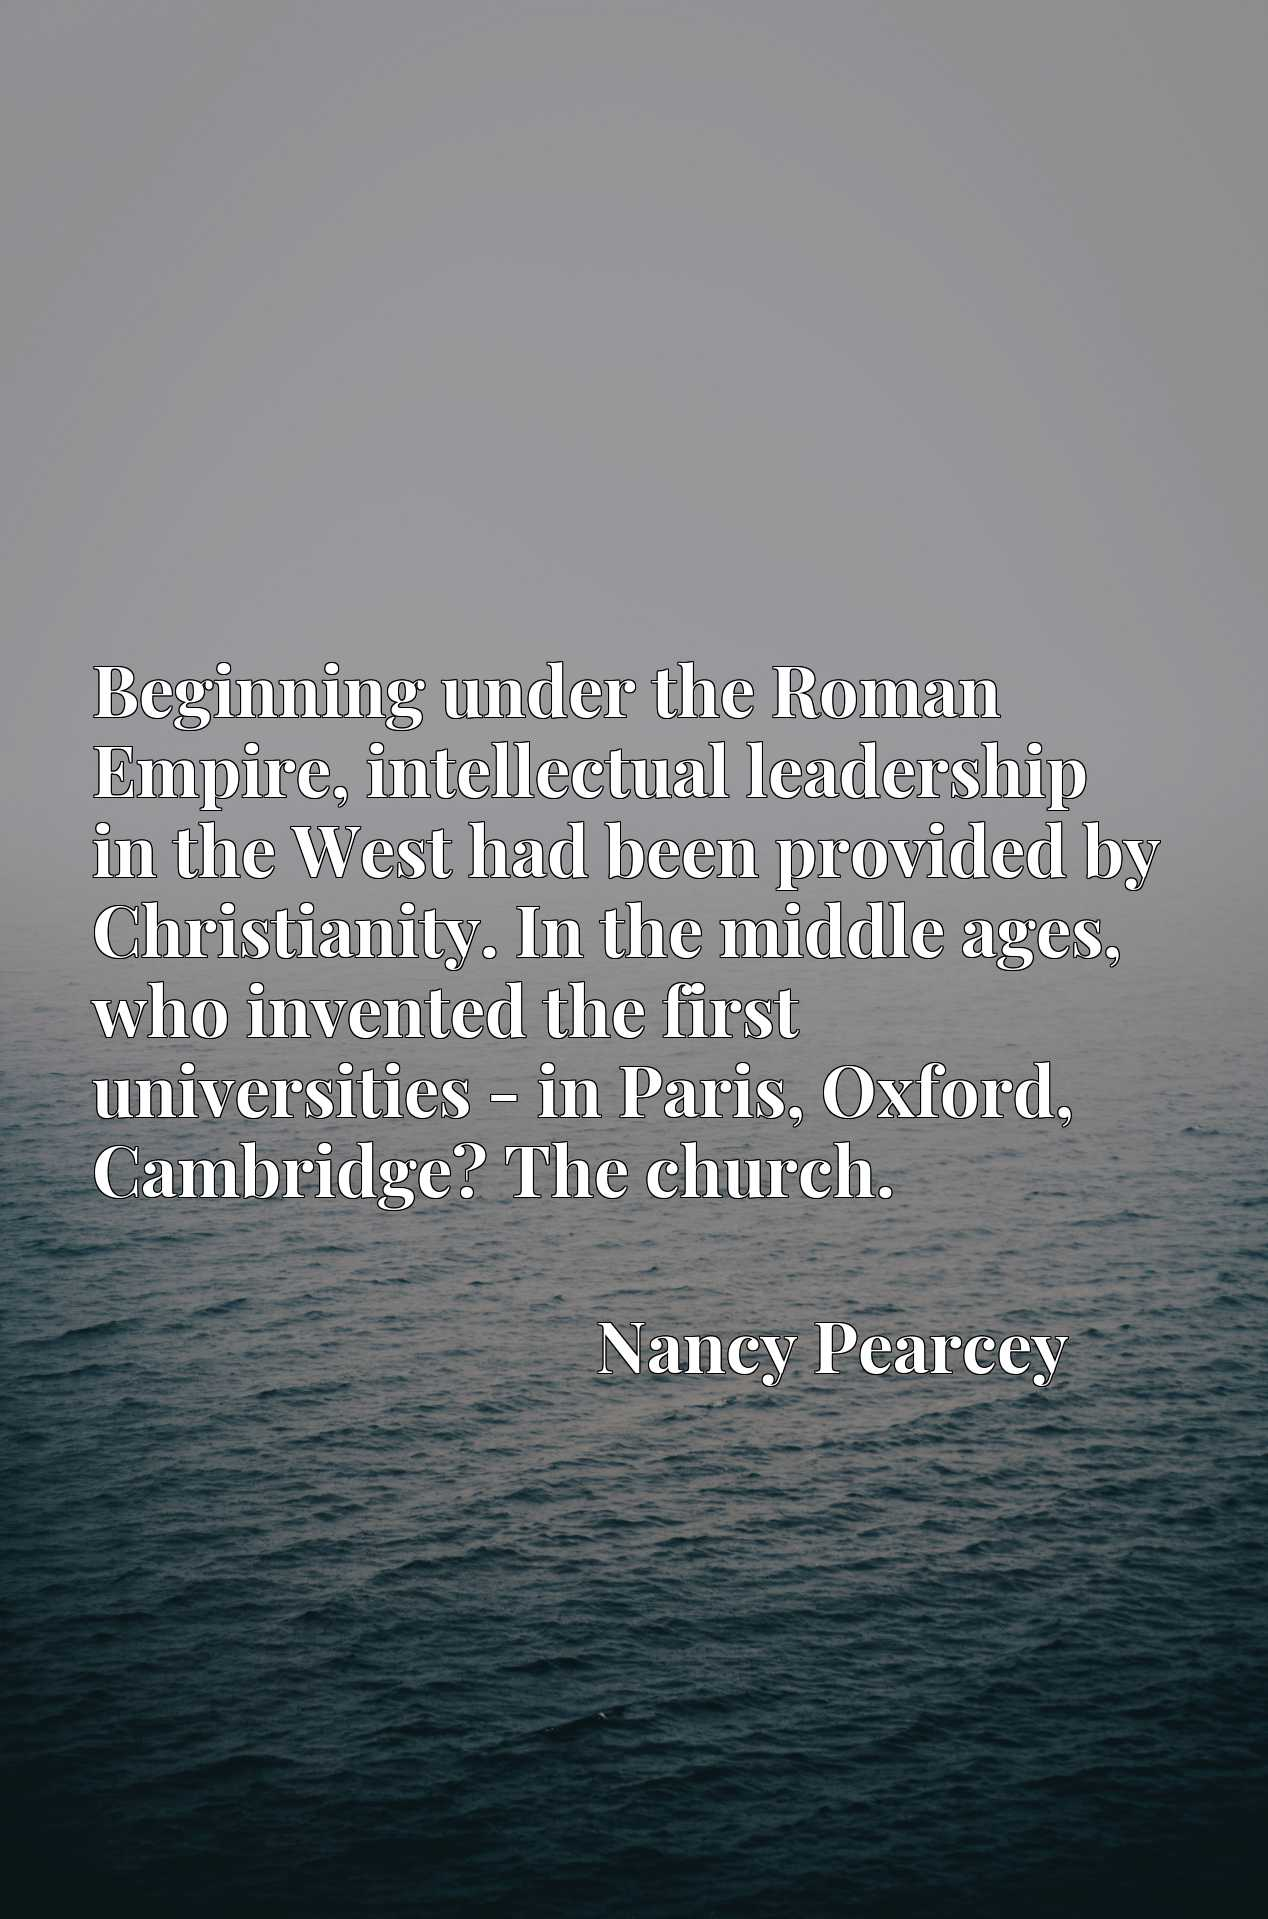 Quote Picture :Beginning under the Roman Empire, intellectual leadership in the West had been provided by Christianity. In the middle ages, who invented the first universities - in Paris, Oxford, Cambridge? The church.